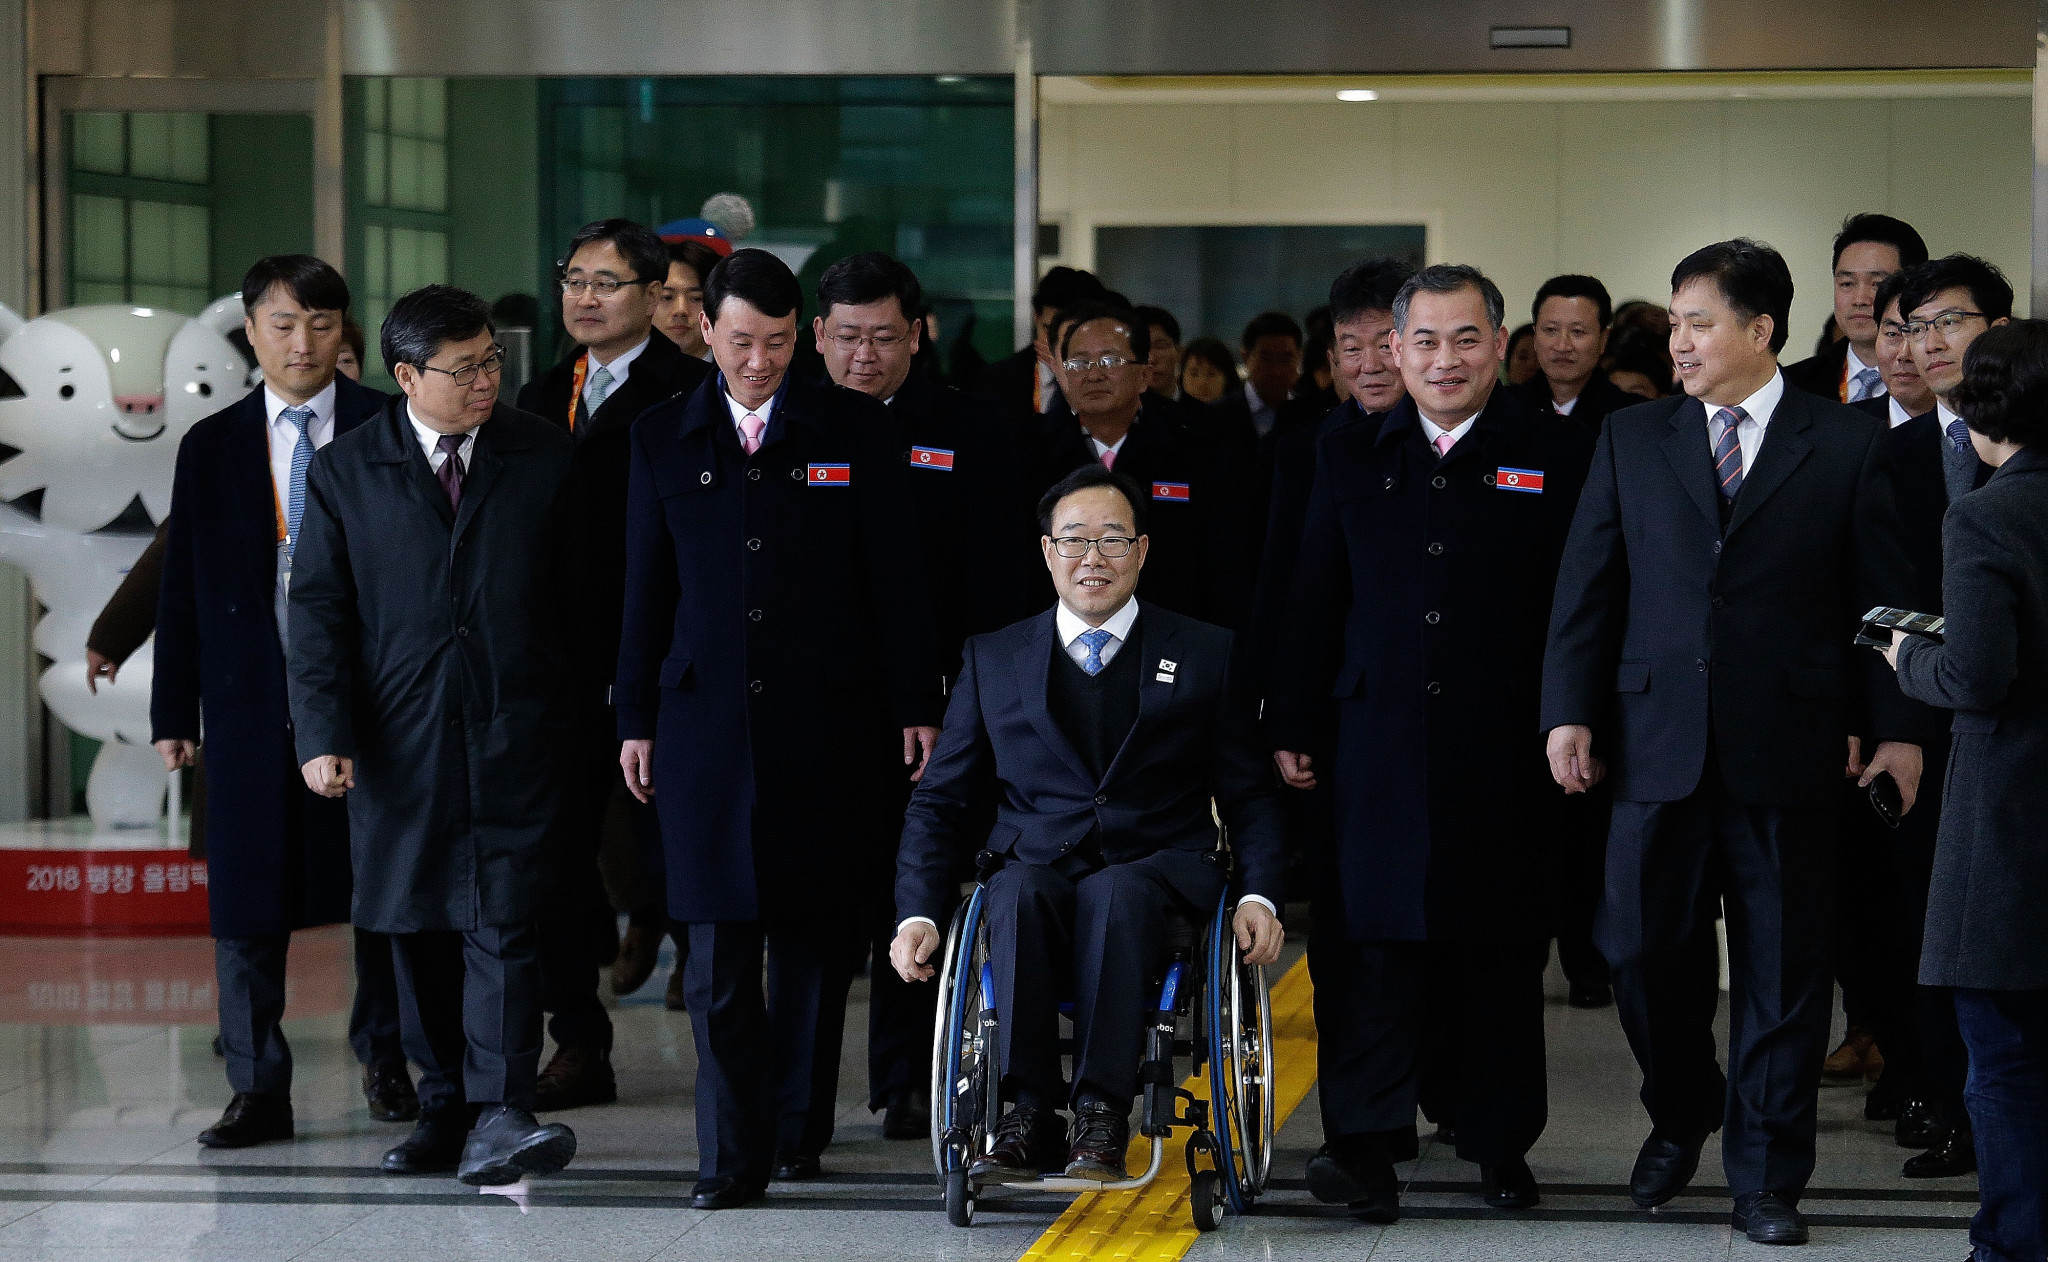 North Korean delegation arrives in South Korea for Pyeongchang 2018 Winter Paralympics